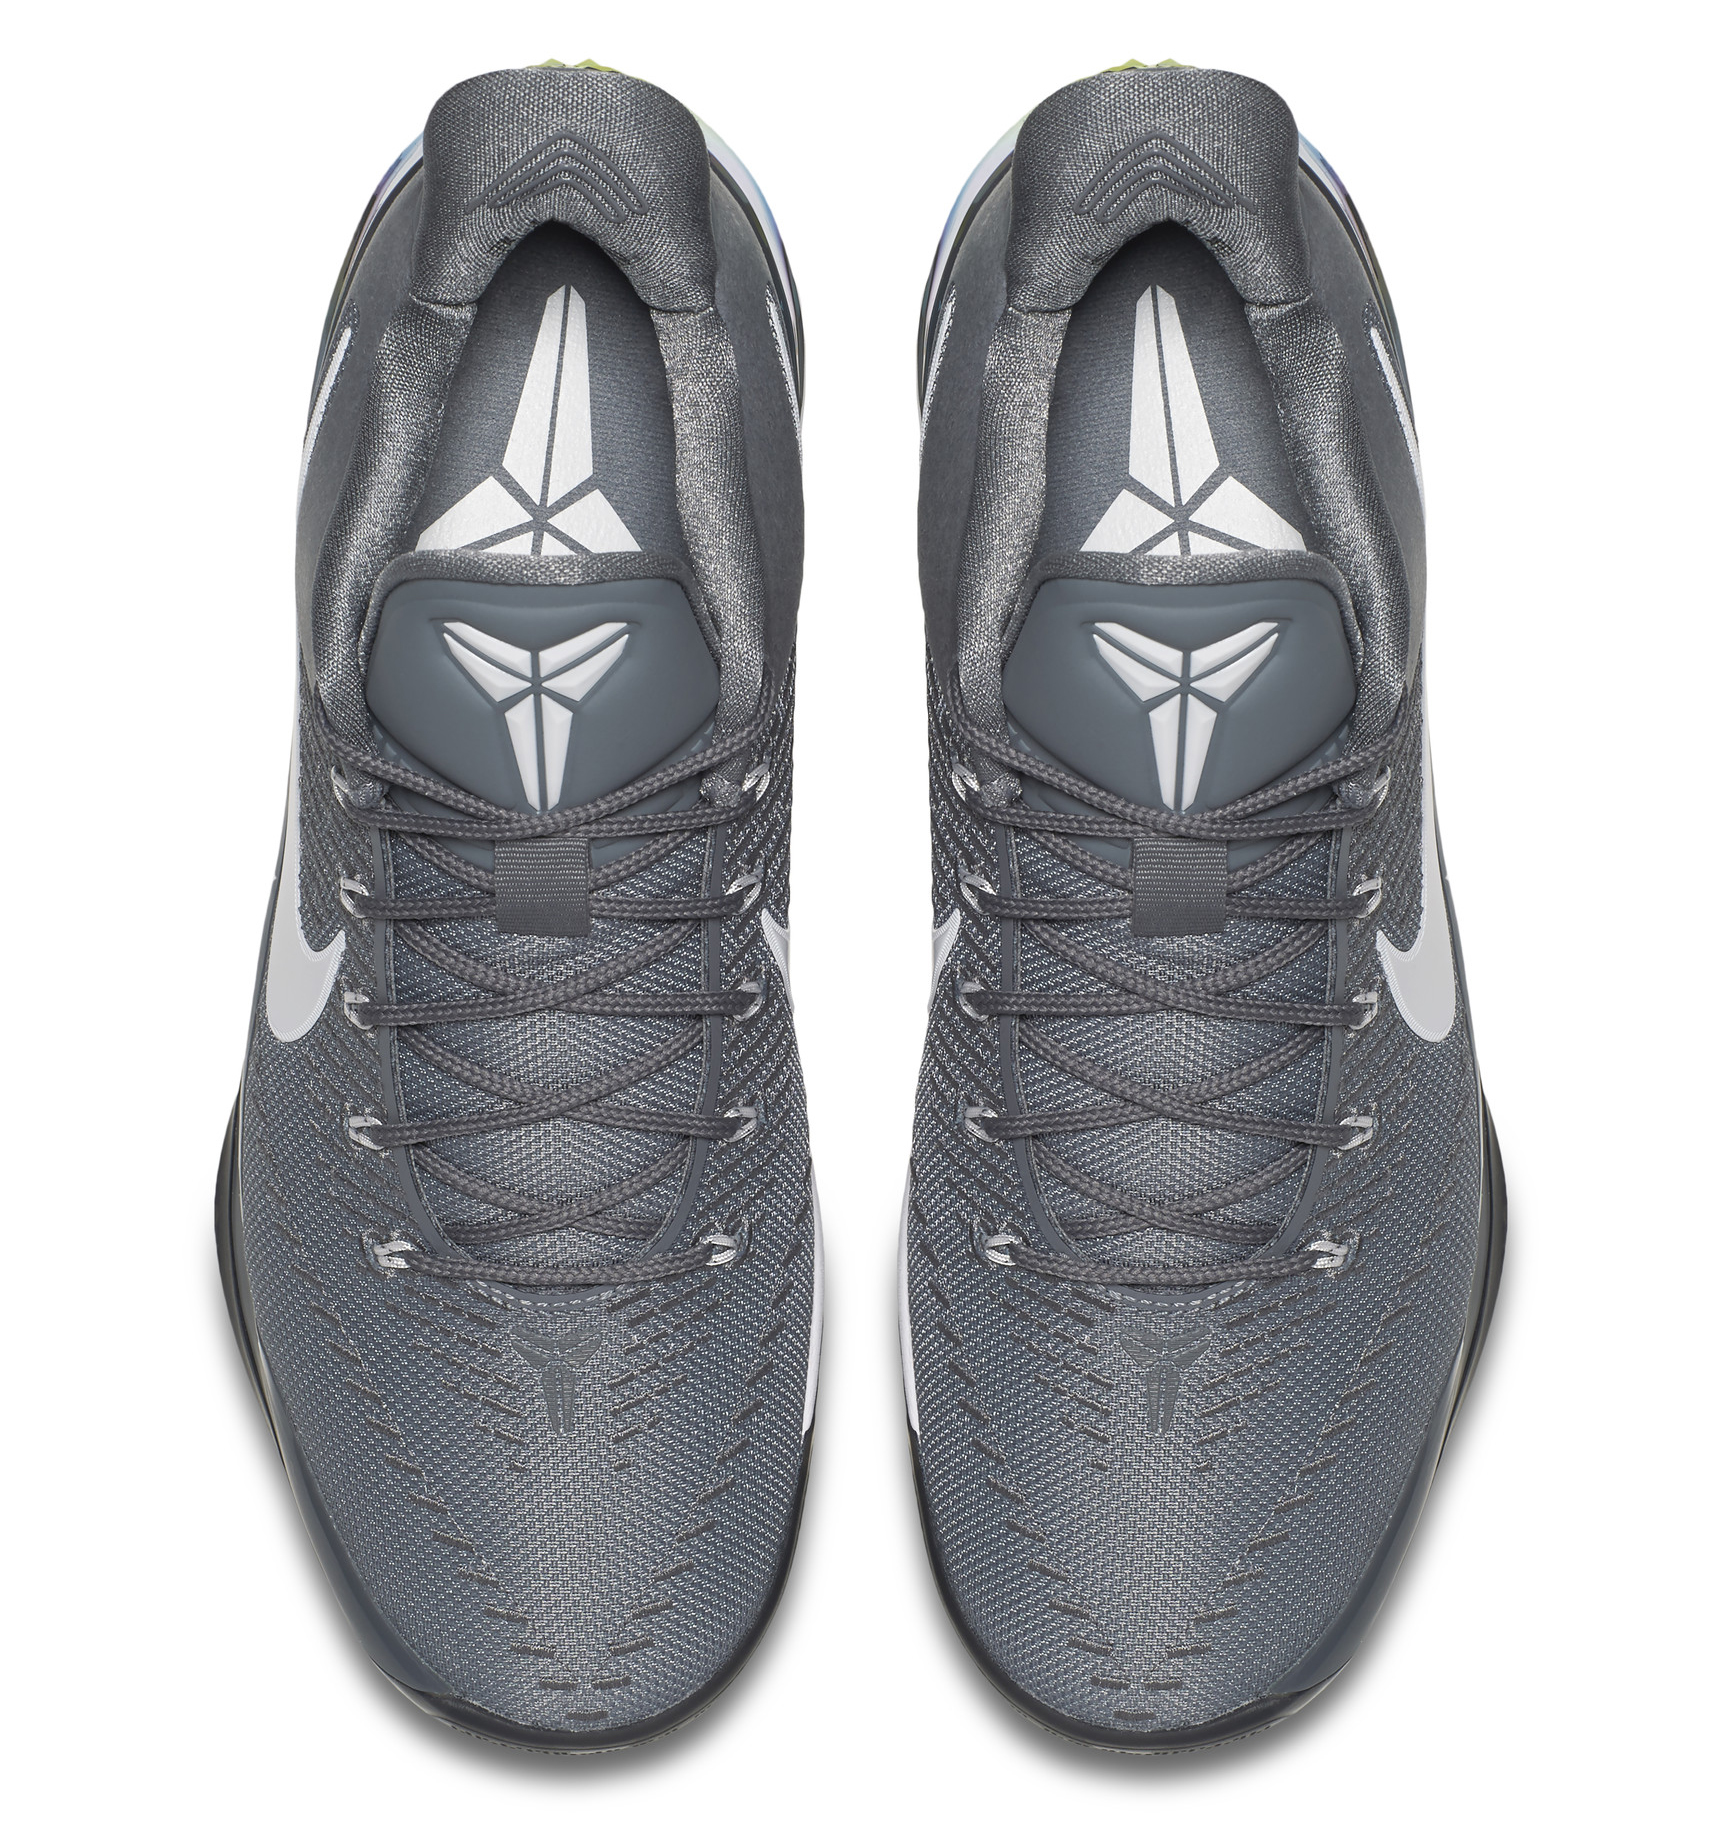 ... Kobe AD Grey White Top Image via Nike ... d646576c2